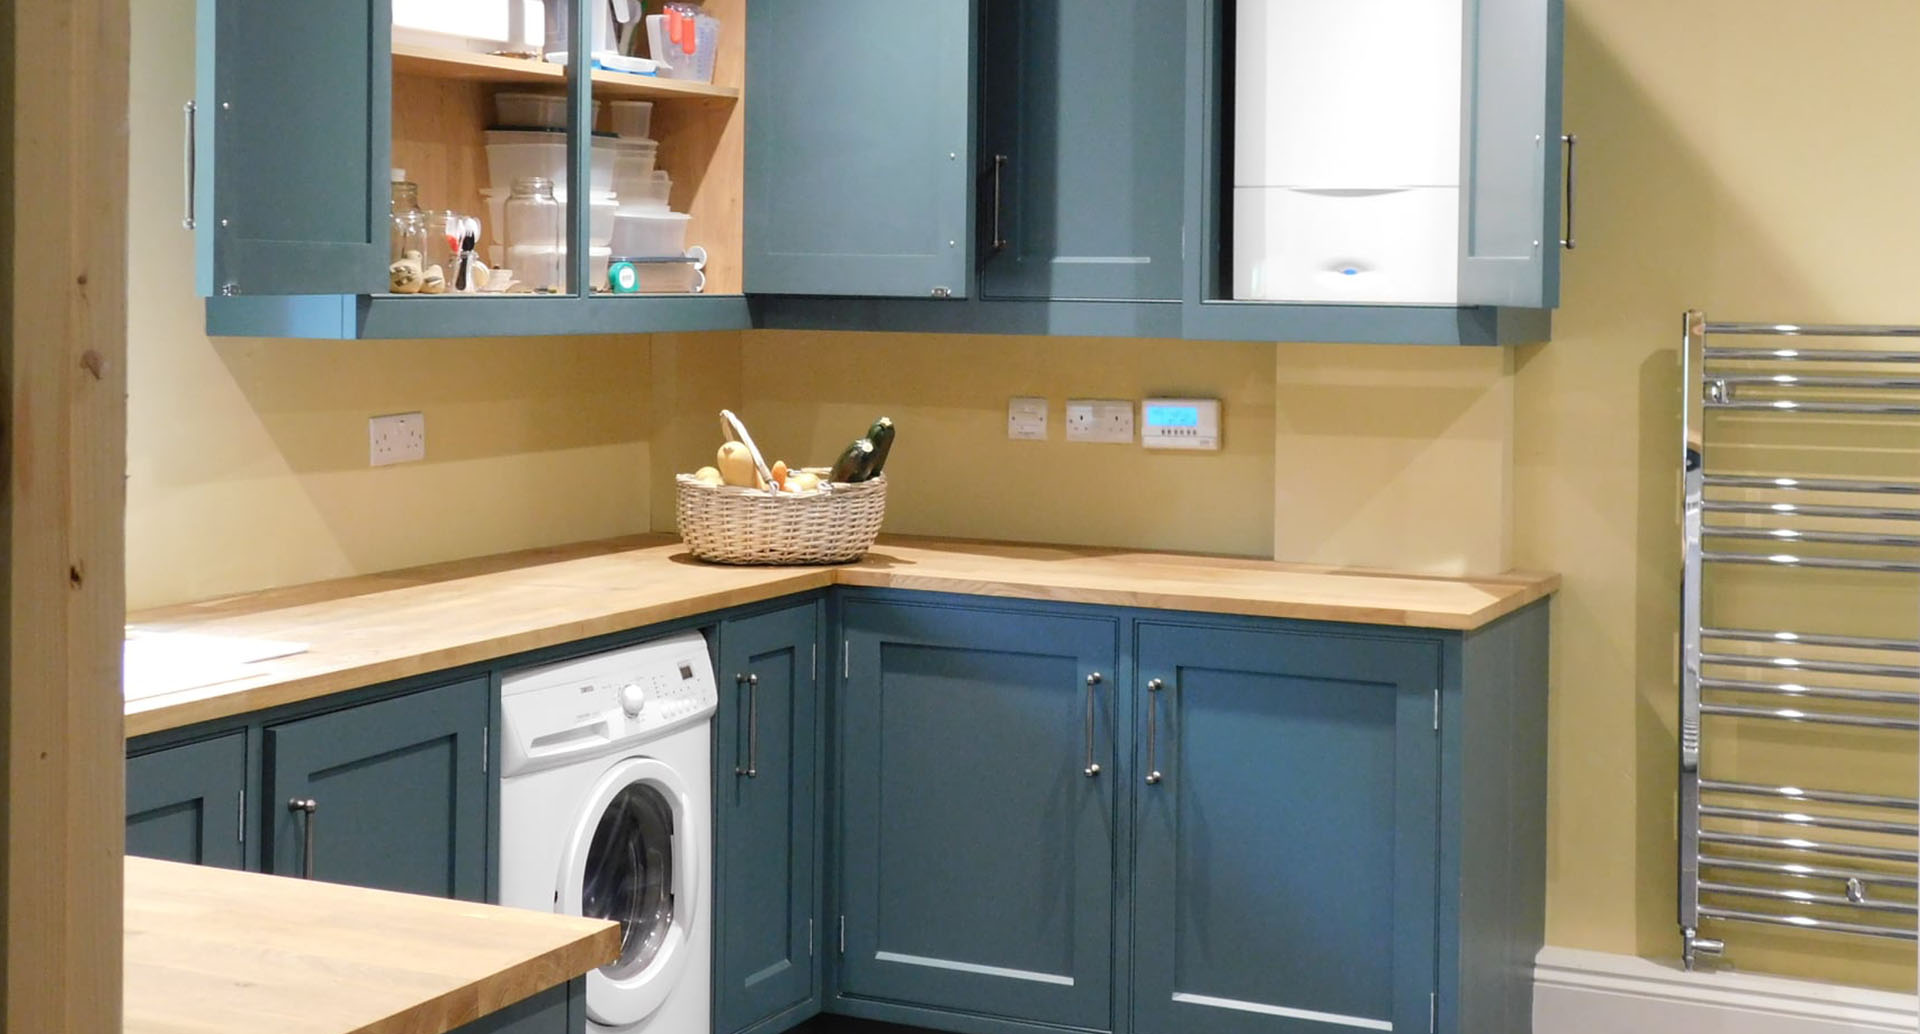 A dazzling utility room with yellow painted walls